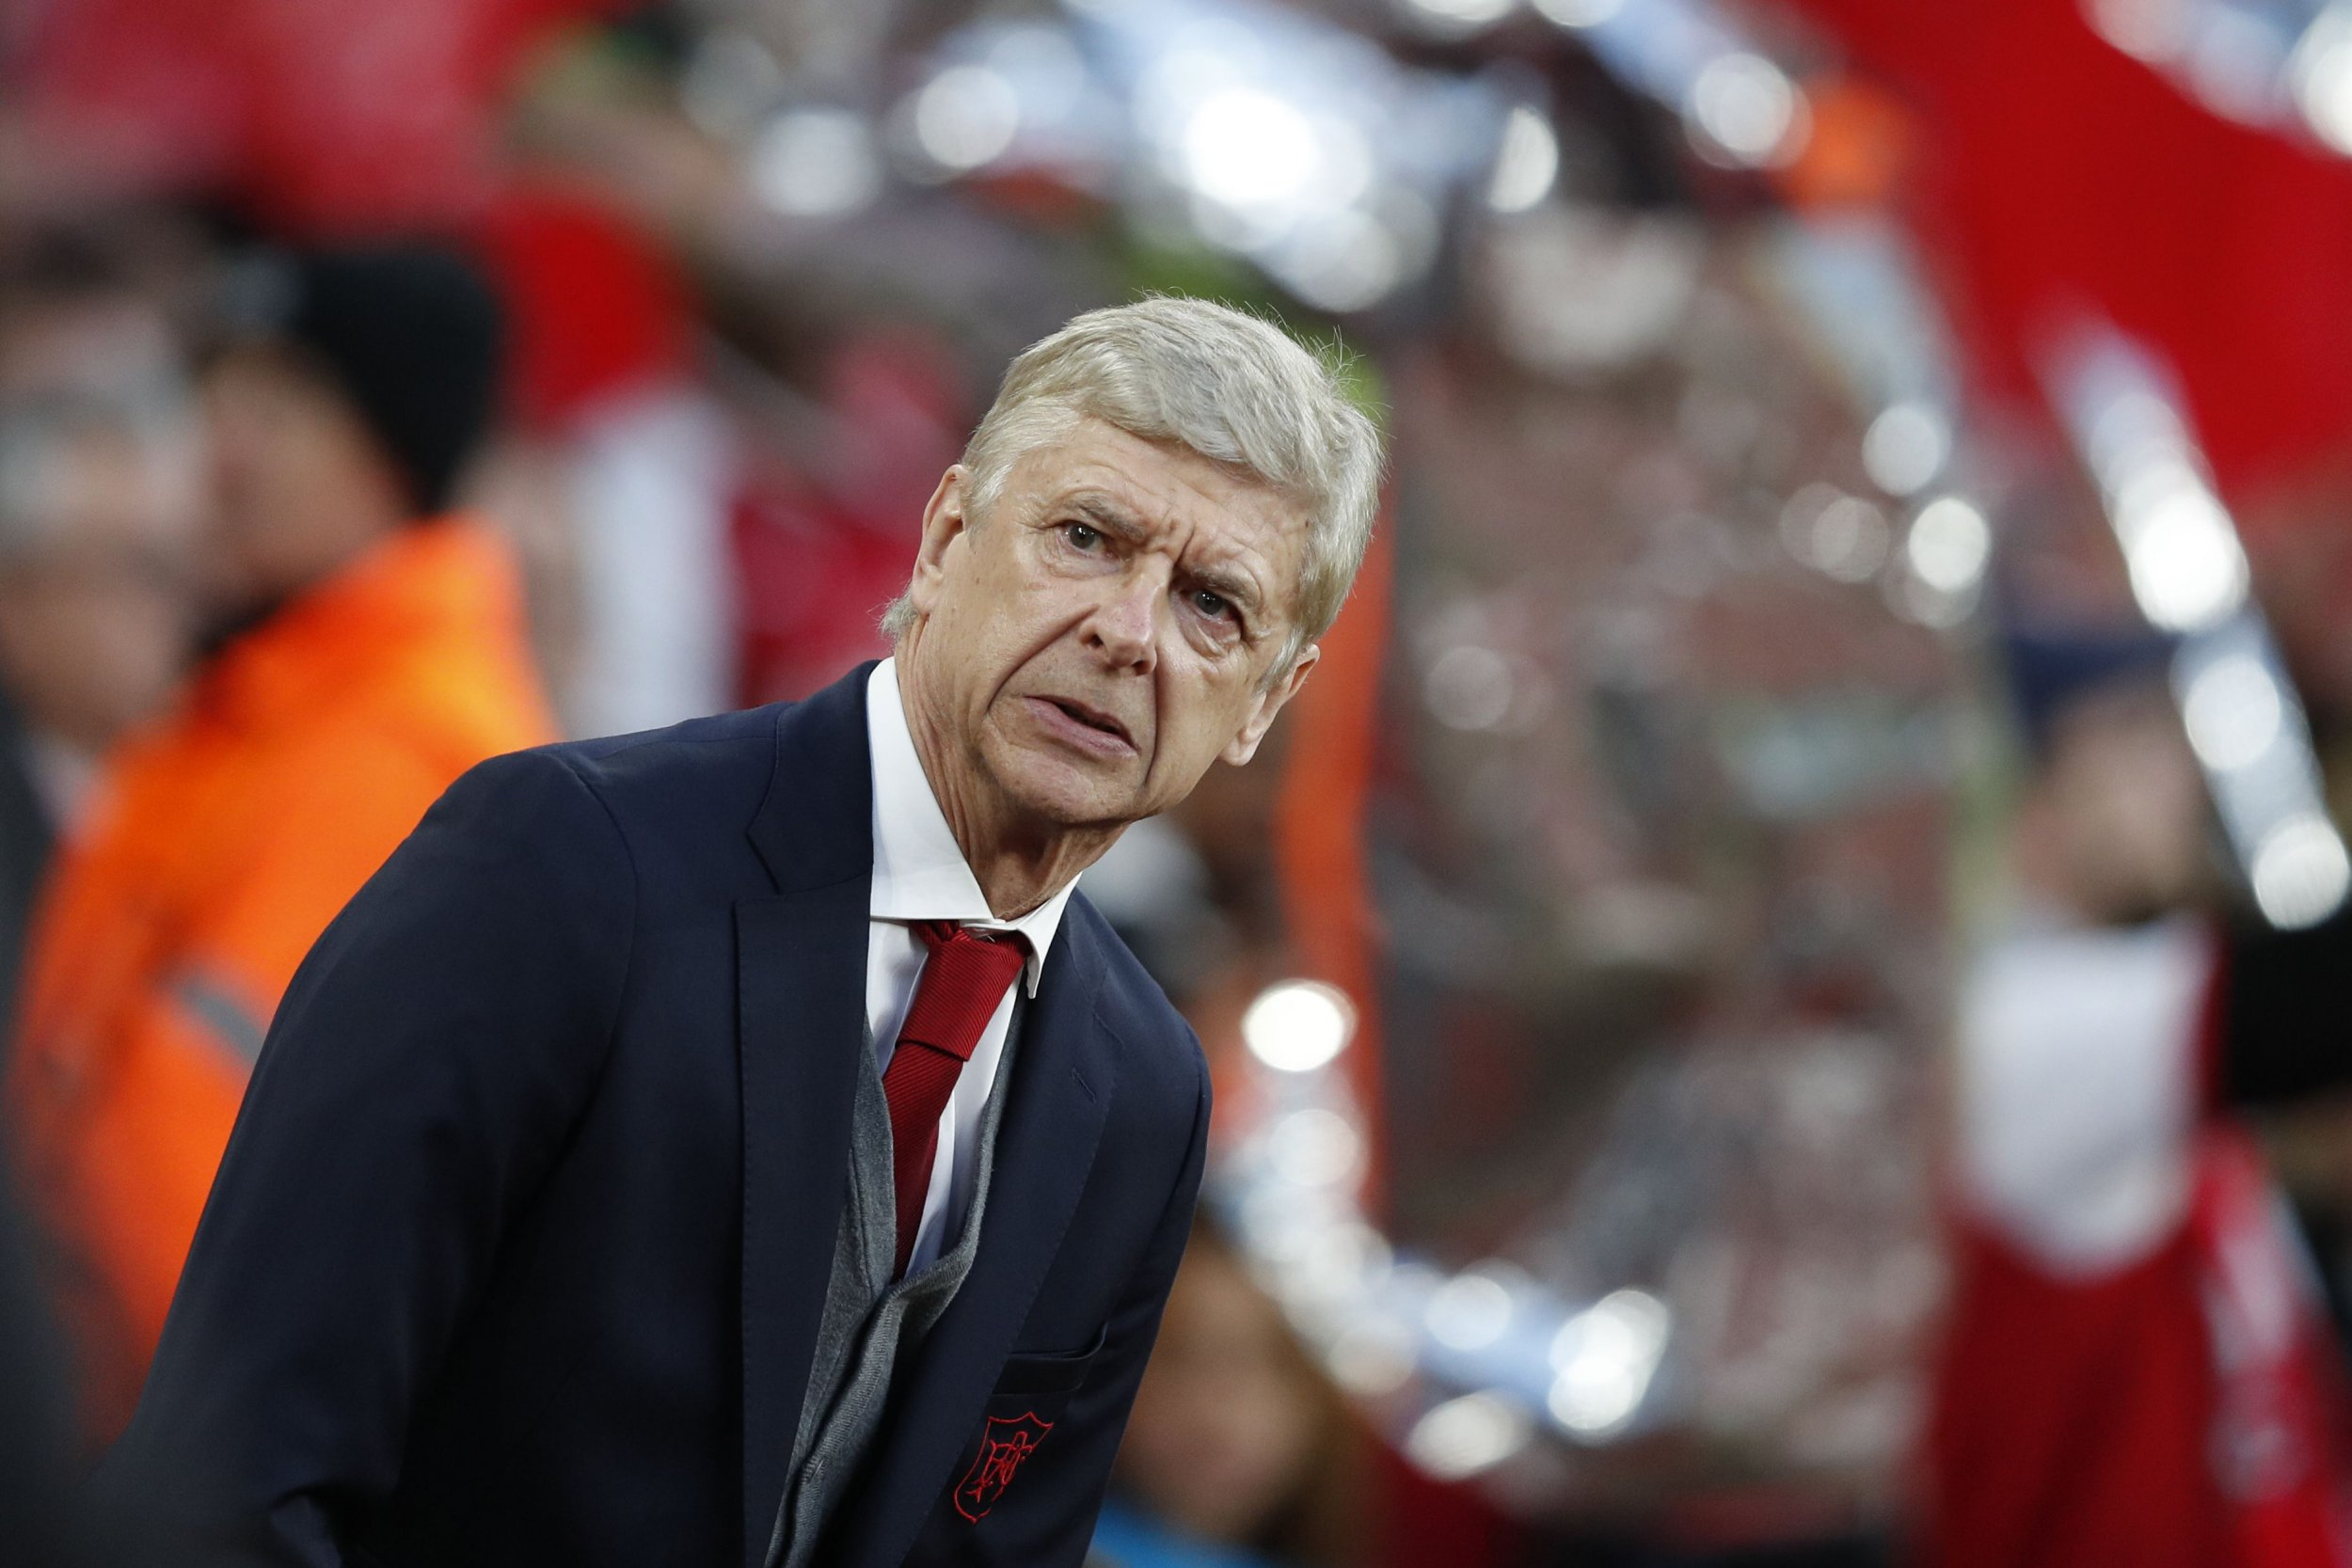 TOPSHOT - Arsenal's French manager Arsene Wenger awaits kick off in the UEFA Europa League first leg semi-final football match between Arsenal and Atletico Madrid at the Emirates Stadium in London on April 26, 2018. / AFP PHOTO / Adrian DENNISADRIAN DENNIS/AFP/Getty Images